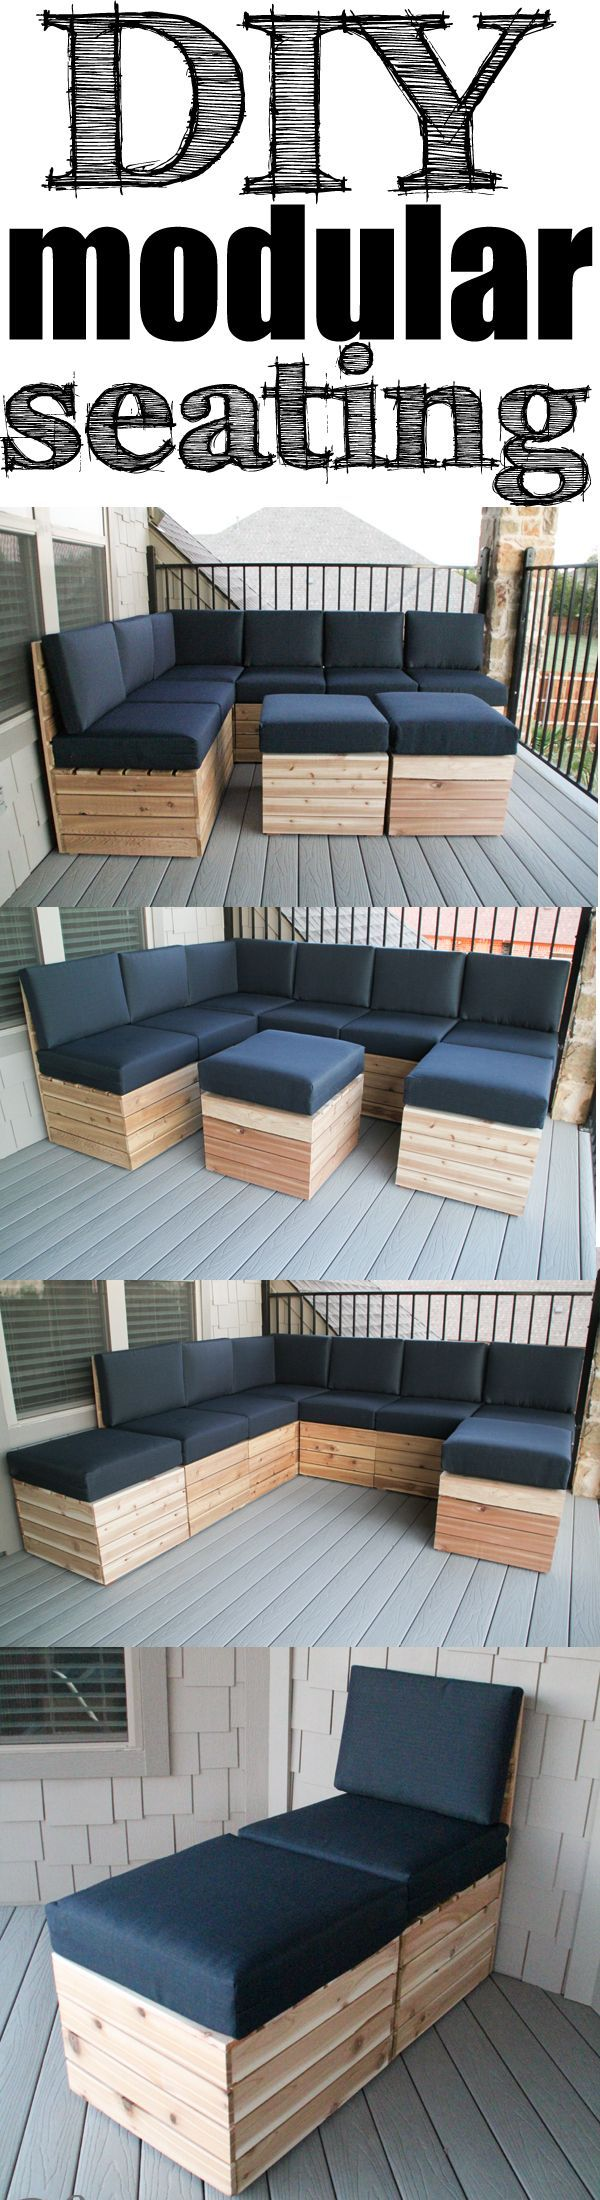 Garden Furniture Out Of Crates 25+ best diy outdoor furniture ideas on pinterest | outdoor